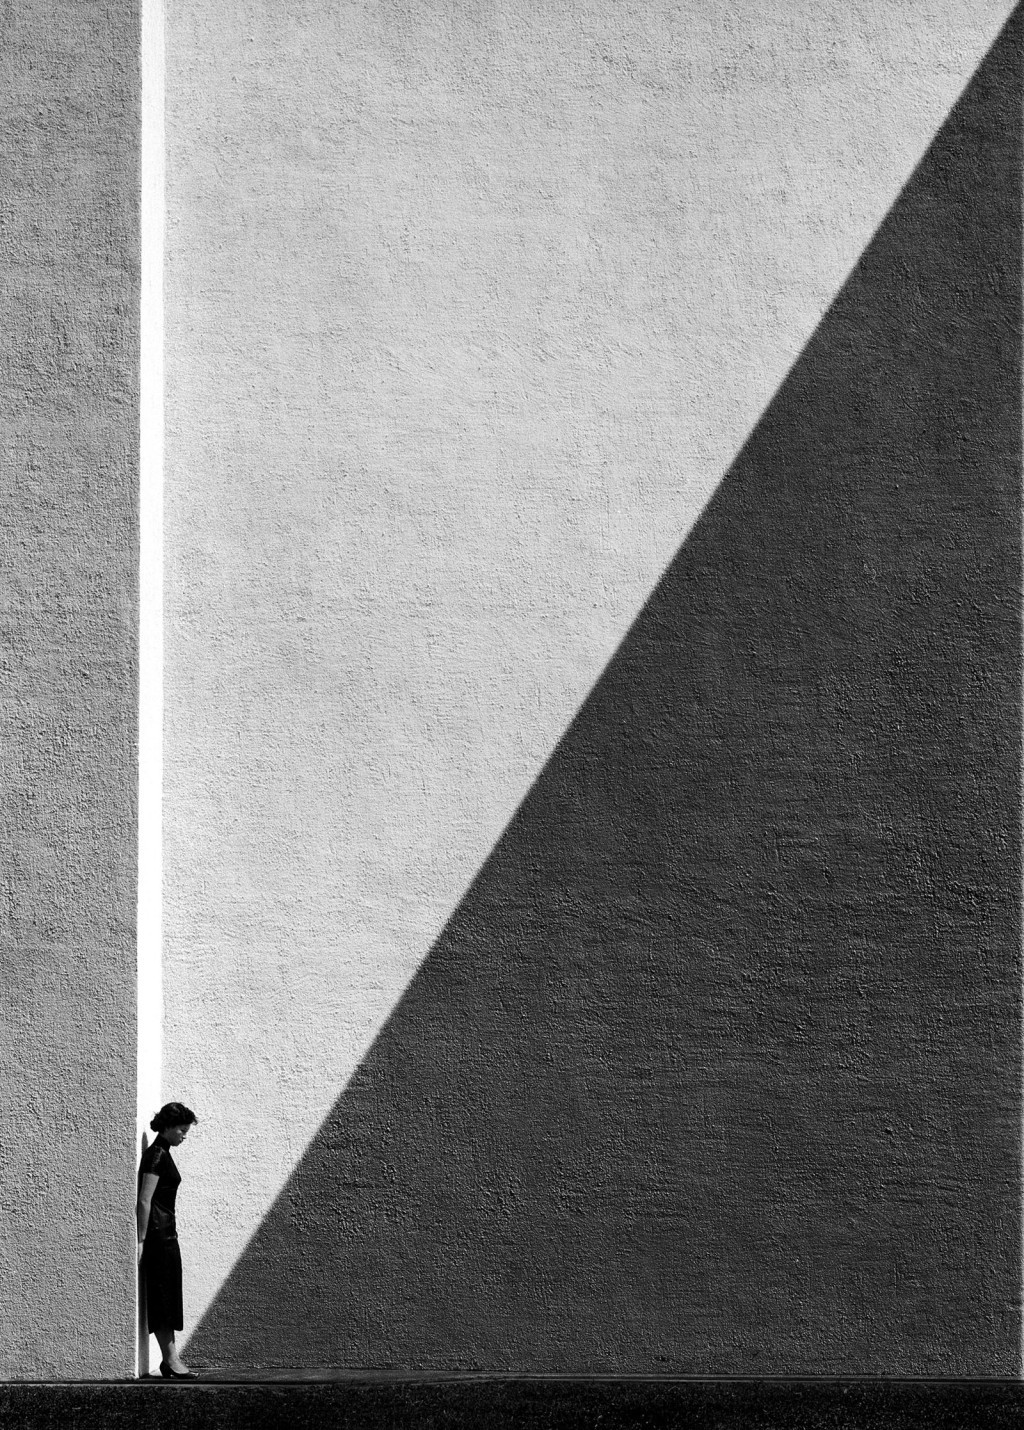 Artwork of the day: Approaching Shadow, 1956/2012 by Fan Ho Looking to freshen up your walls in 2013? Take a look at our collection of bold and graphic works for inspiration.